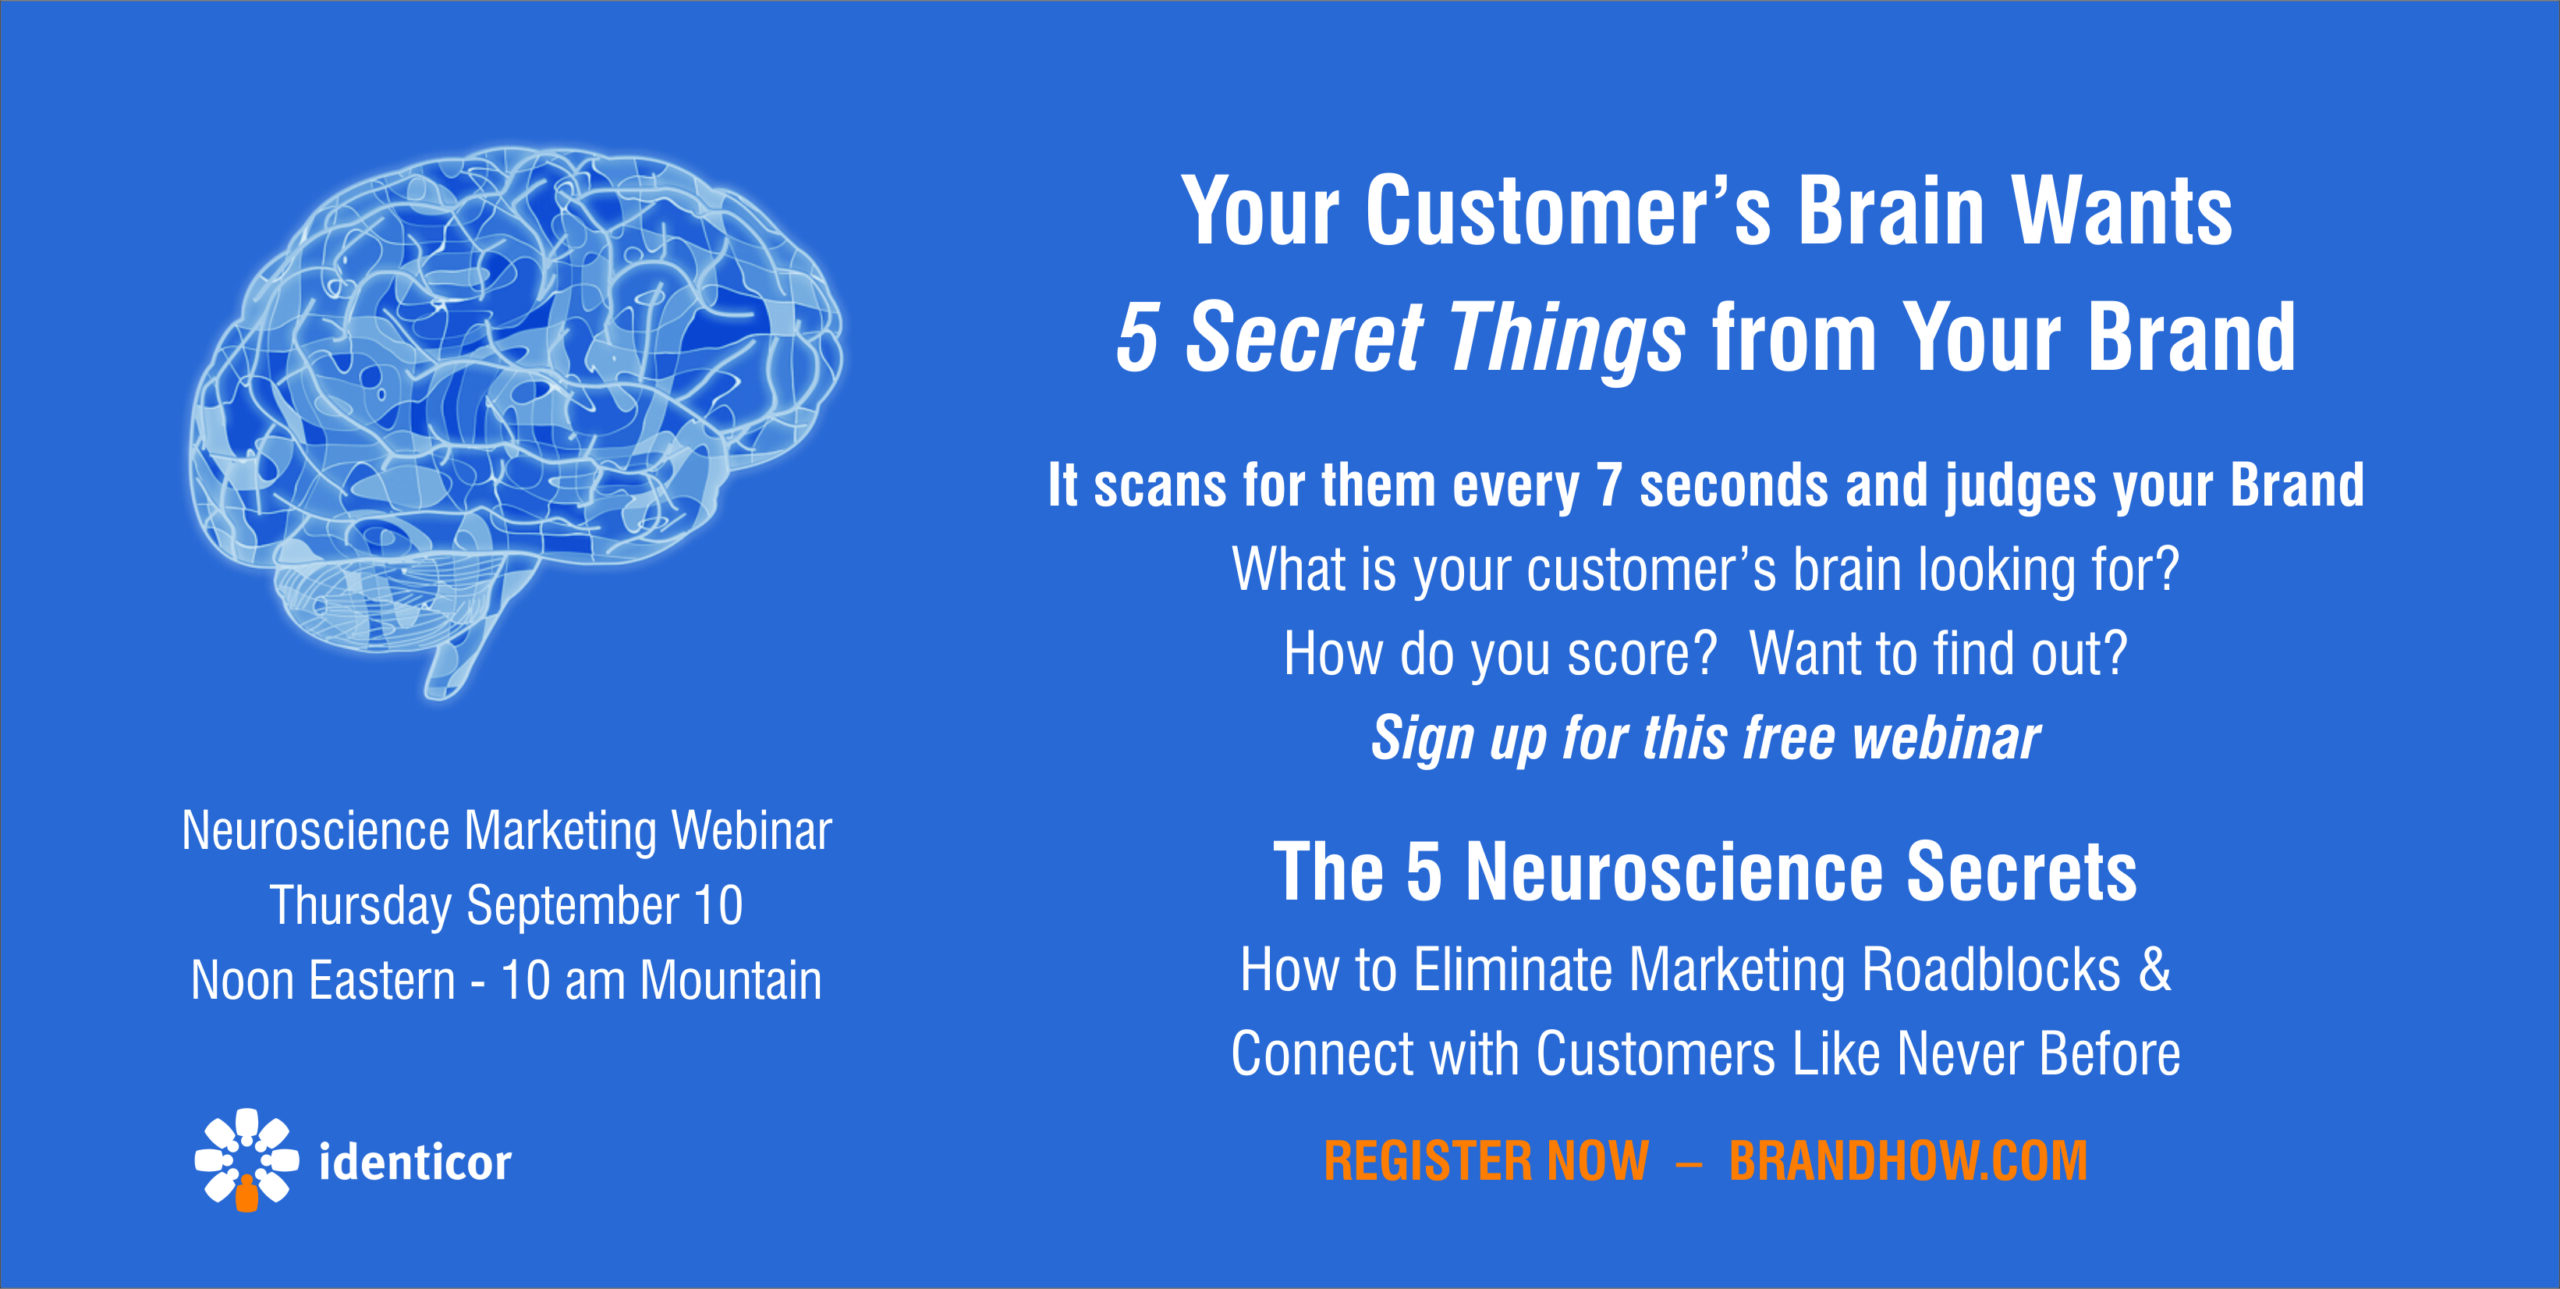 The 5 Neuroscience Secrets – What Your Customer's Brain is Looking for